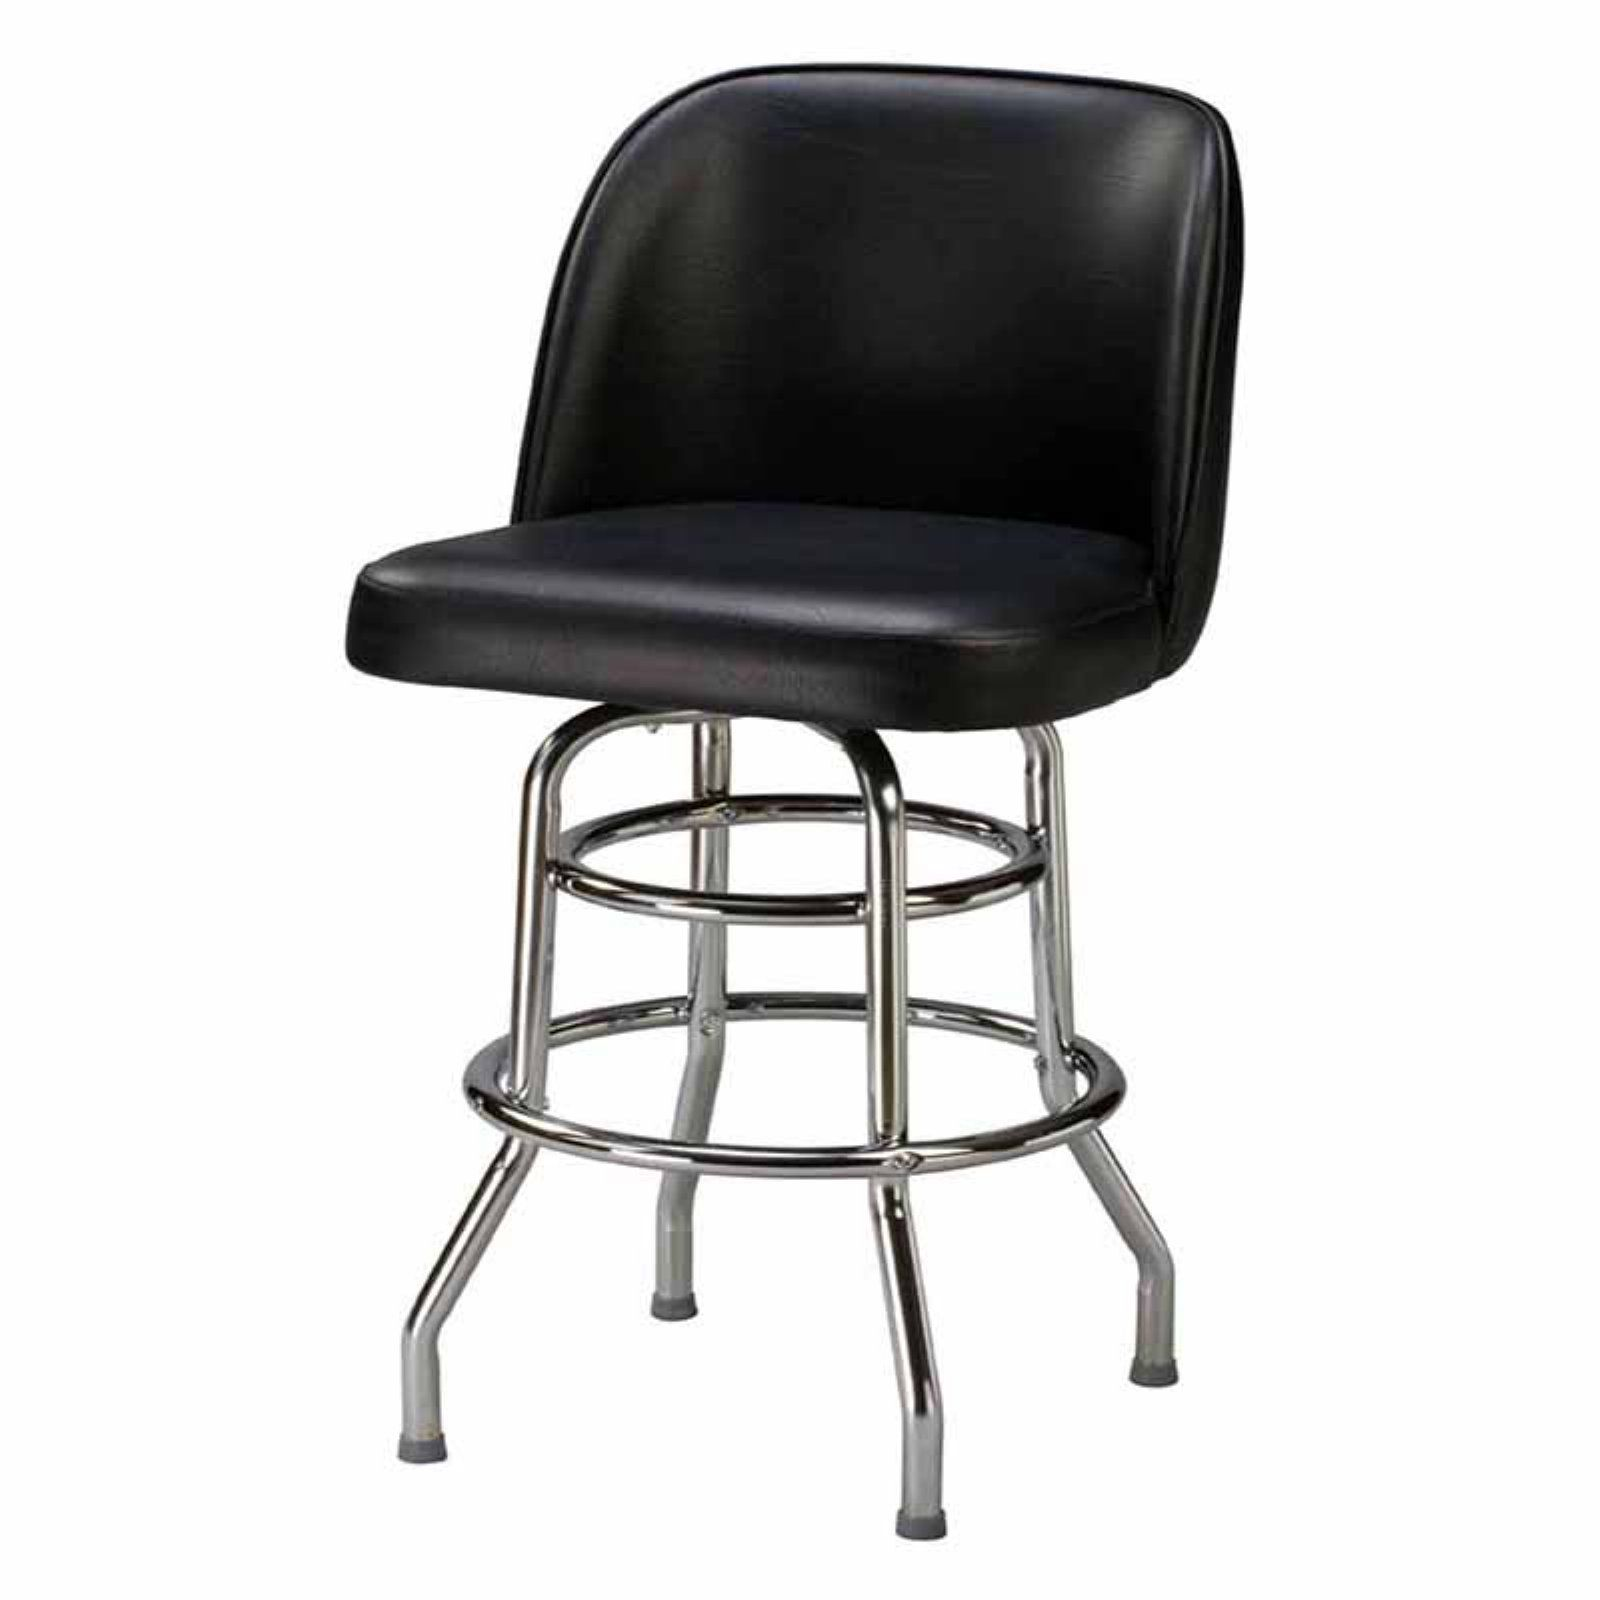 Groovy Regal Bucket Seat Large 26 In Double Ring Chrome Counter Bralicious Painted Fabric Chair Ideas Braliciousco